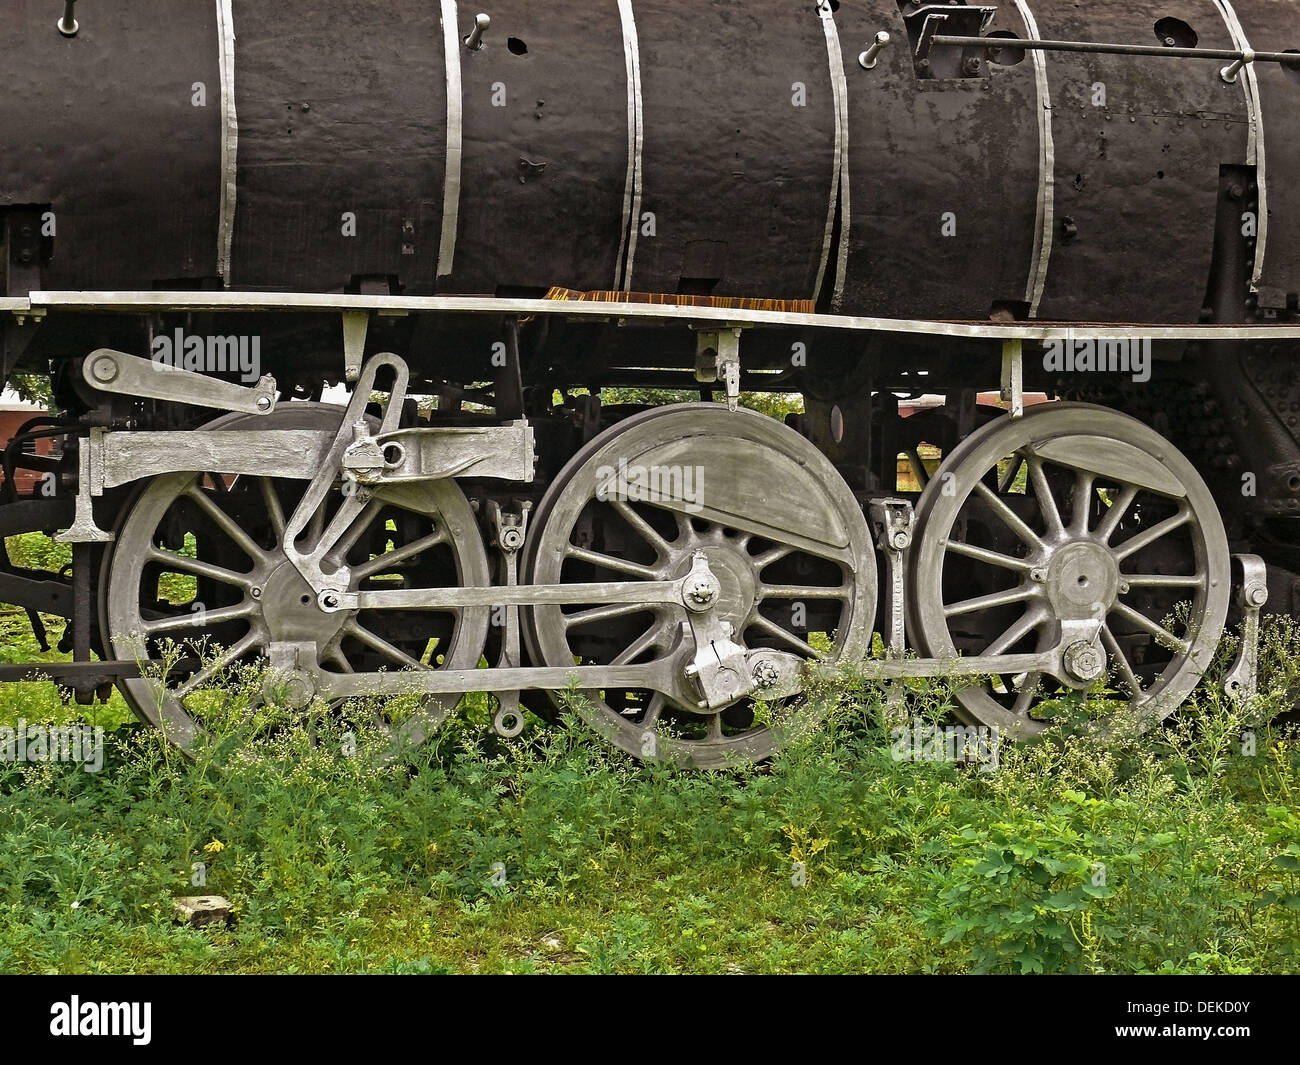 Steam locomotive wheel details. Mhow, Madhyapradesh, India. In India only Mhow is the town where old railway steam engines - Stock Image